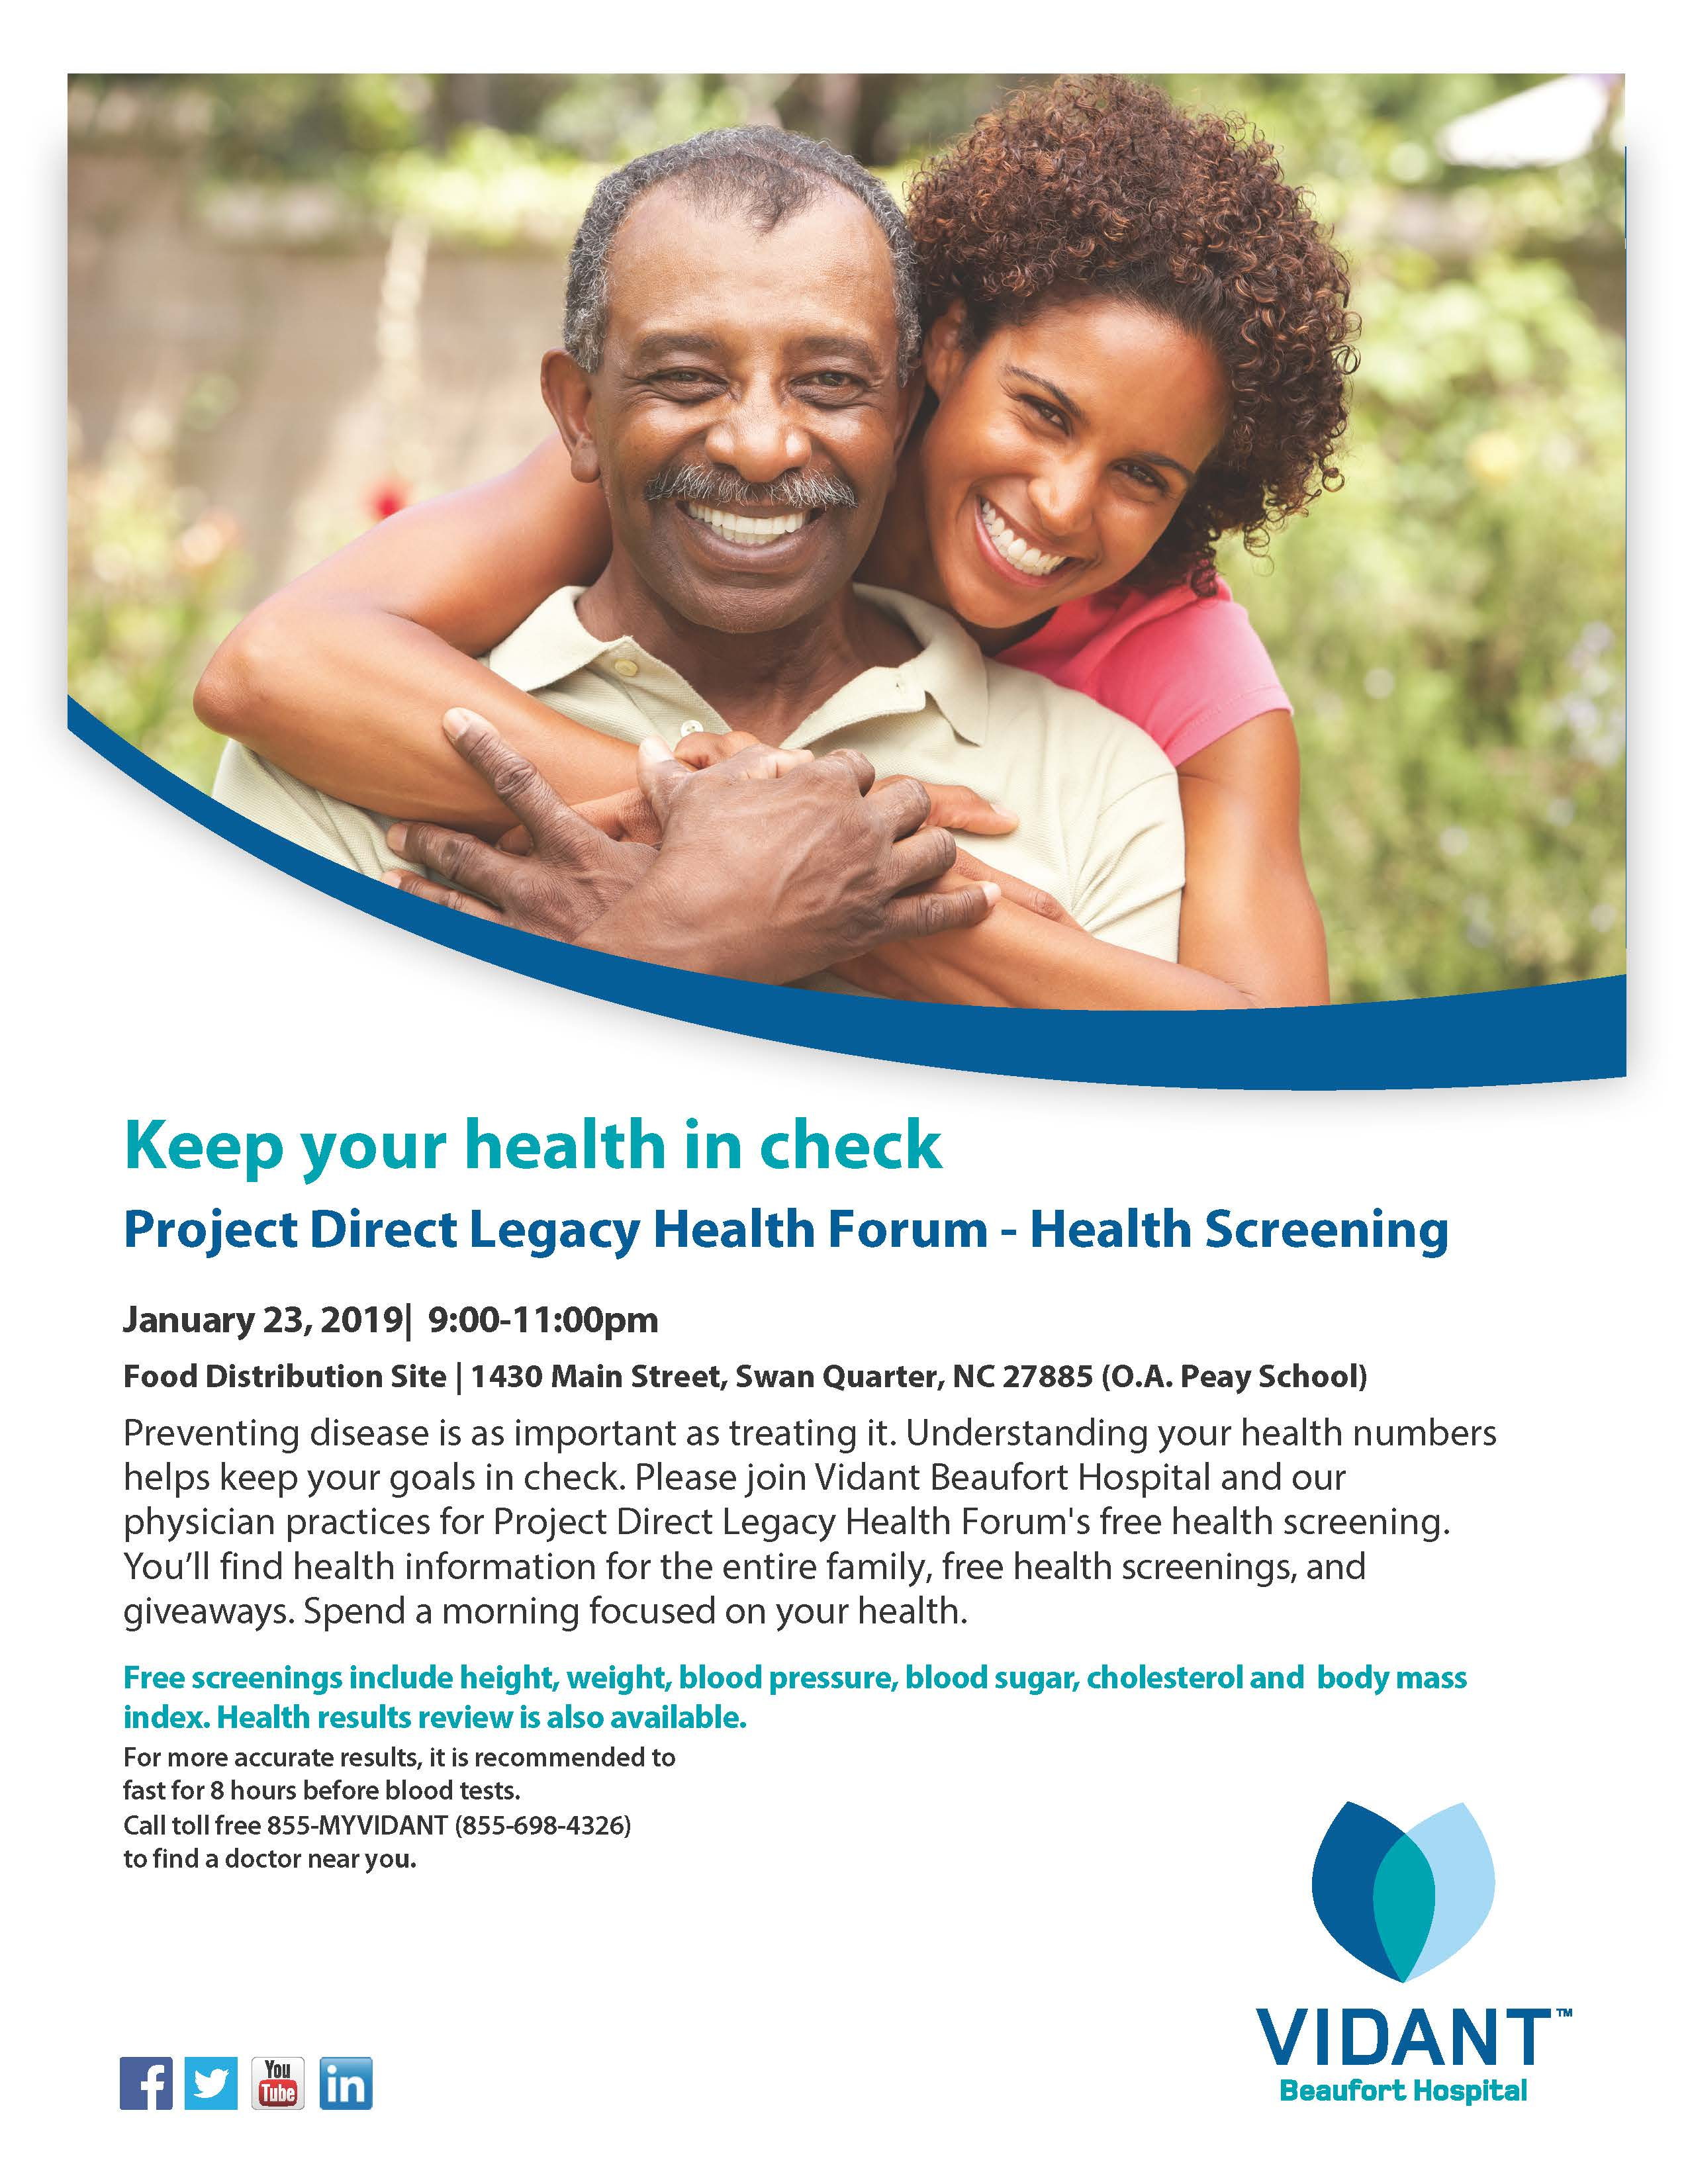 a035a8583 01/05/2019 - Project Direct Legacy Health Forum will be hosting a health  screening at the O.A Peay School, 1430 Main St, Swan Quarter on January 23.